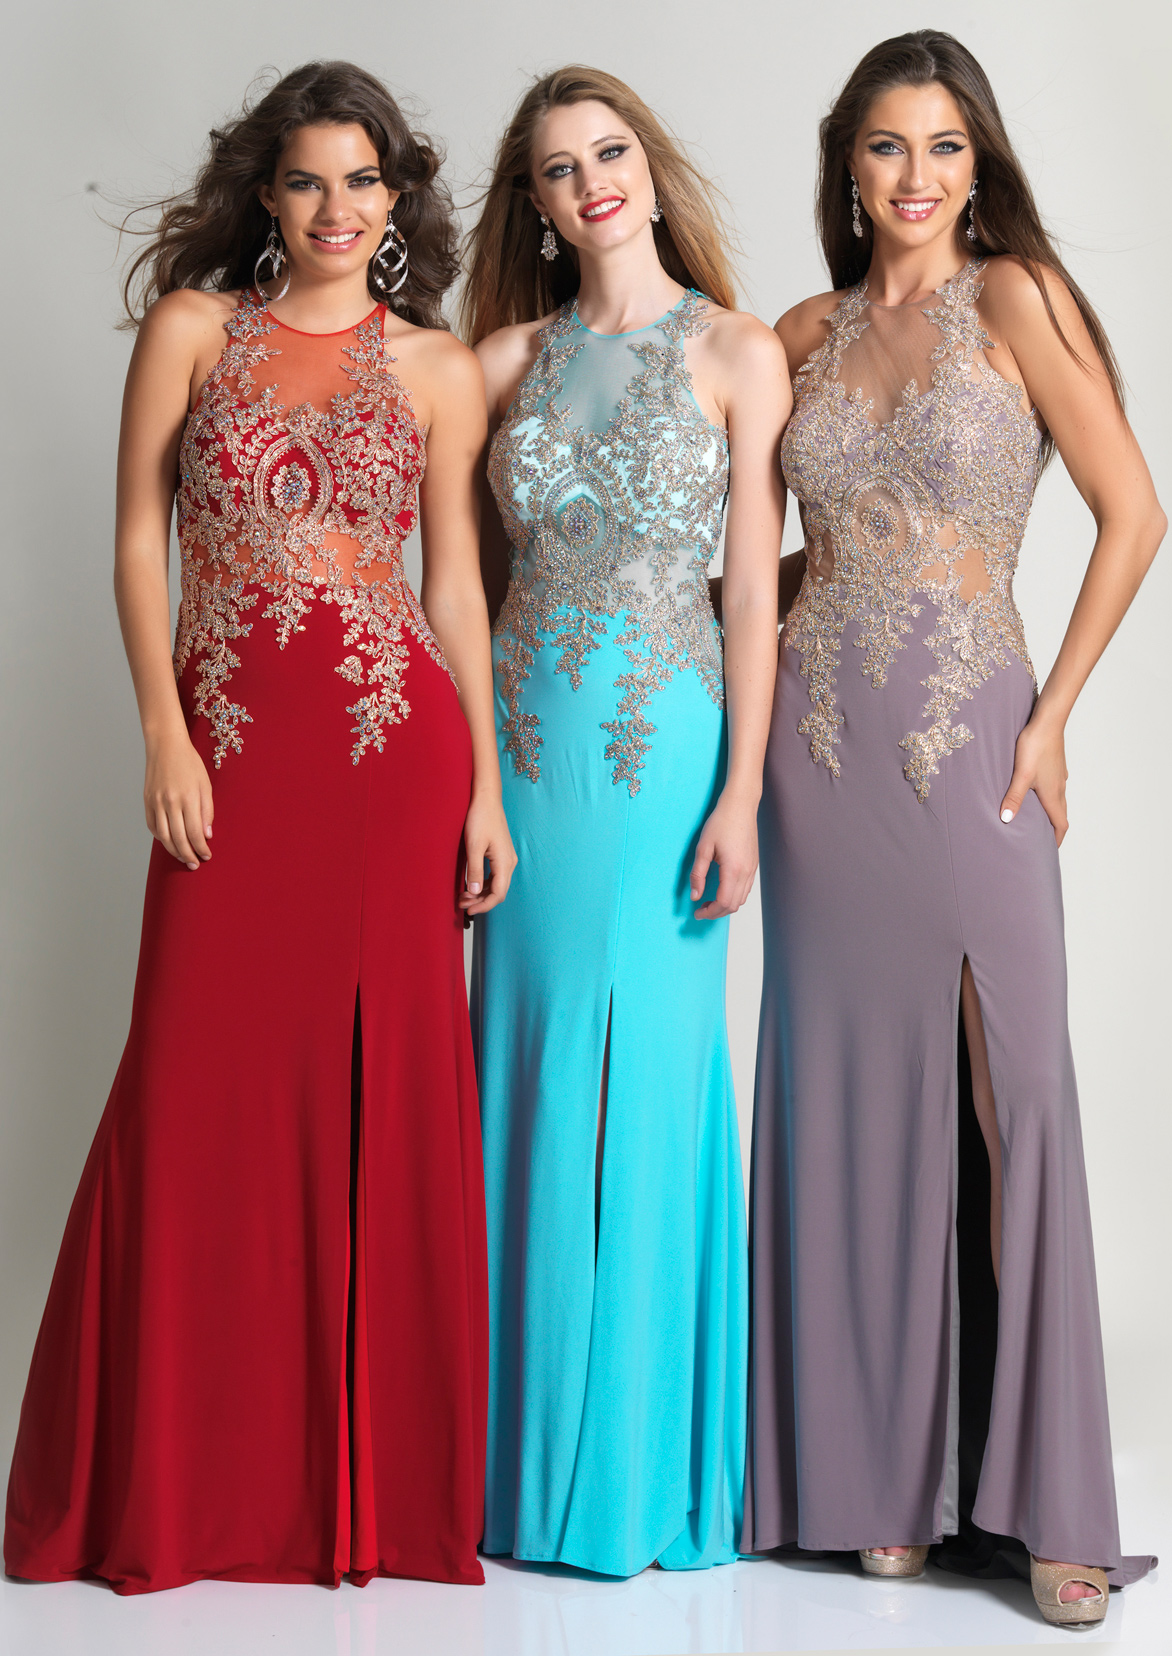 Comfortable Prom Dresses 2010 Pictures Inspiration - Wedding Ideas ...